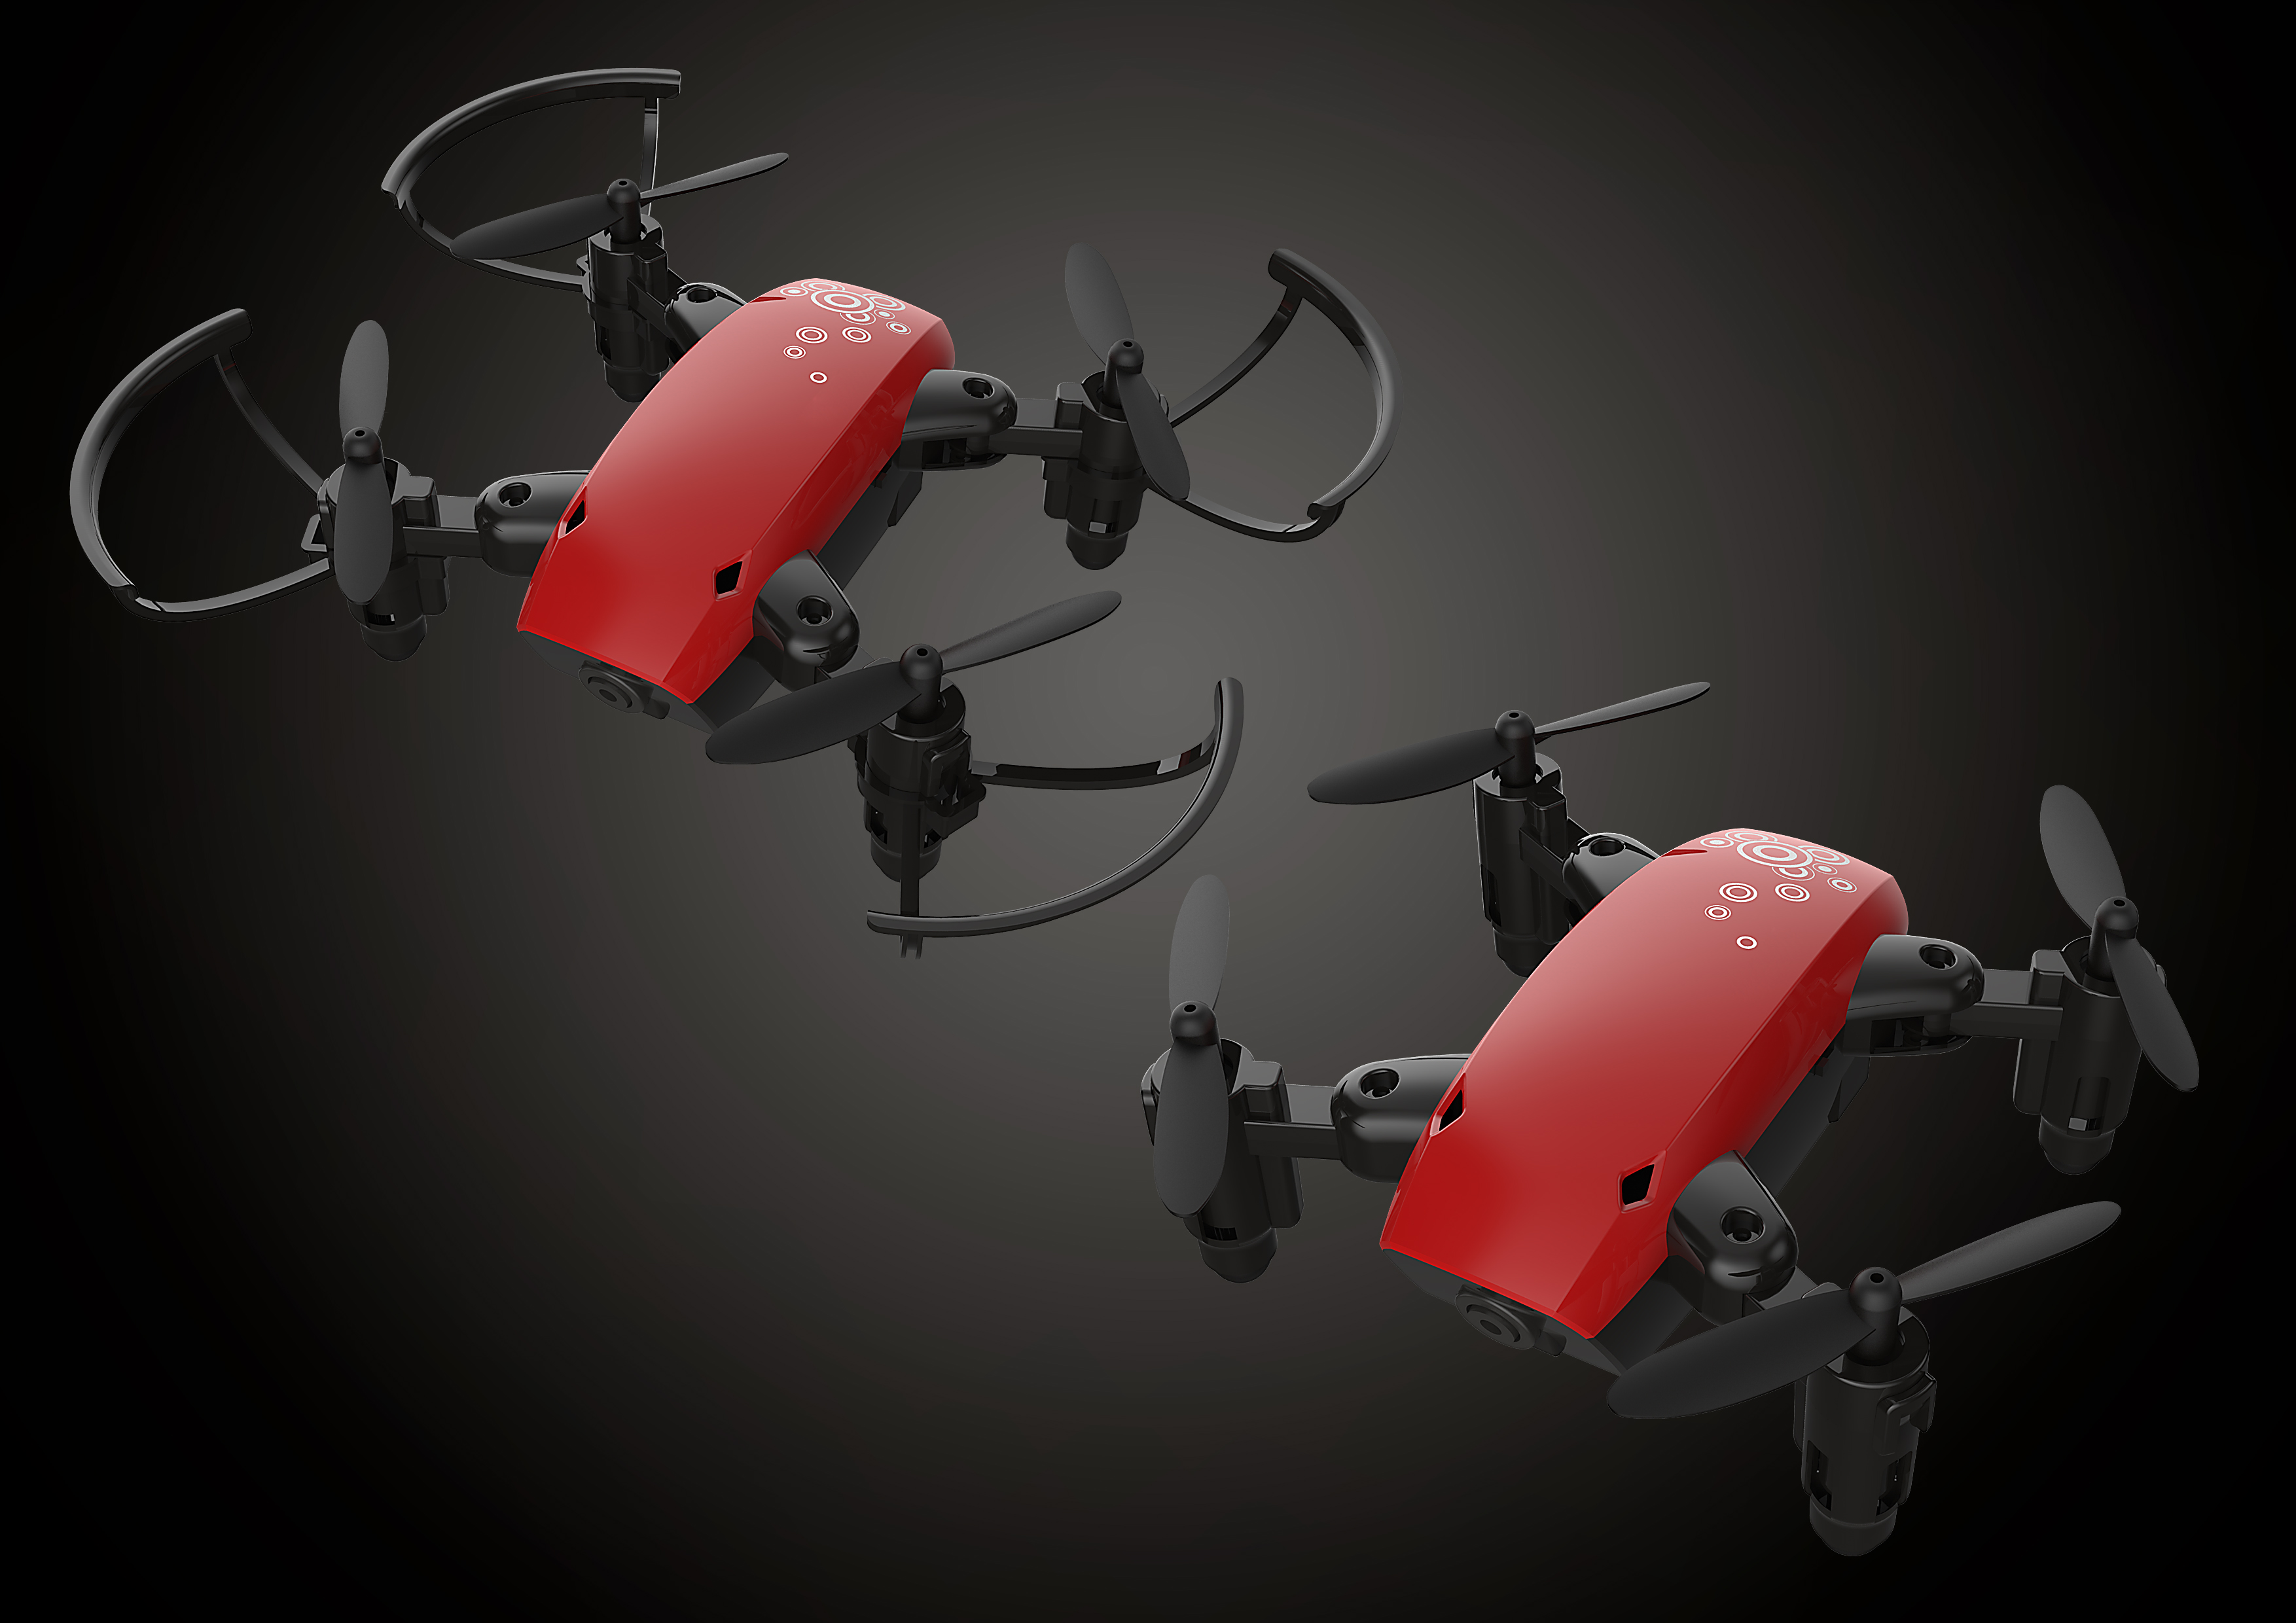 1806A series Fixed height unmanned aerial vehicle Helic Max four axis aerial photography for boys toys - 3